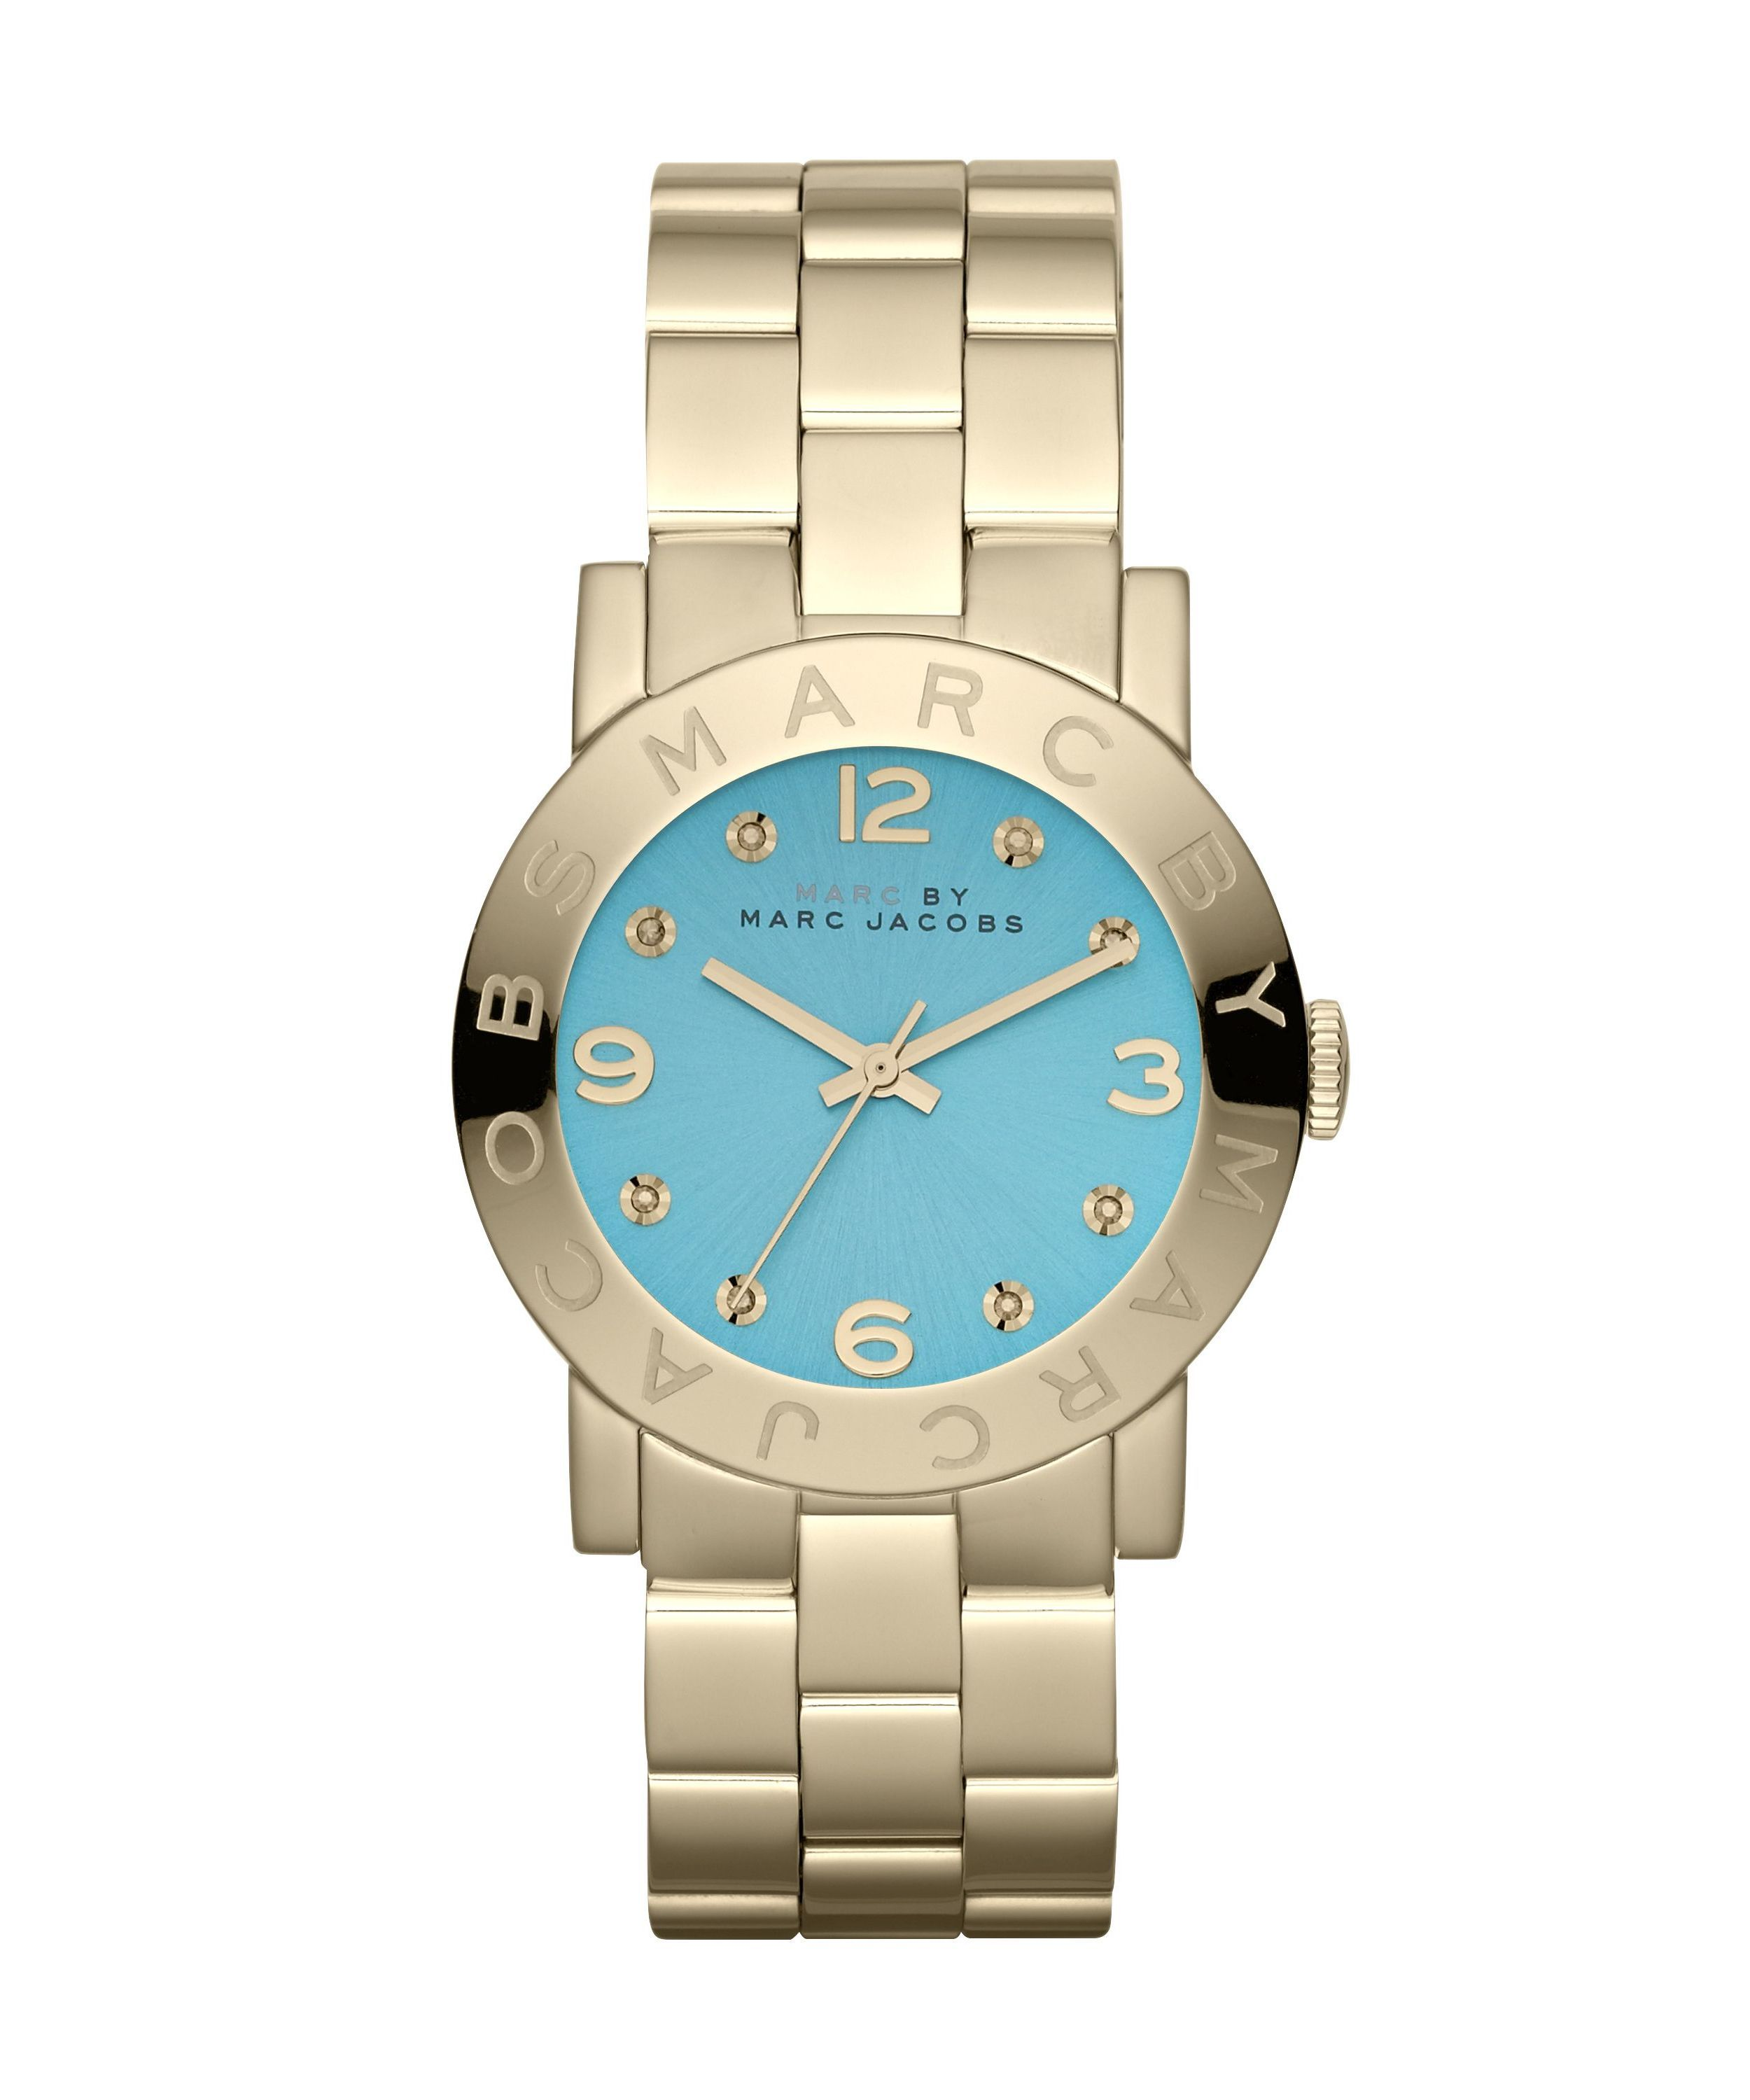 MBM3220 Amy gold stainless steel ladies watch